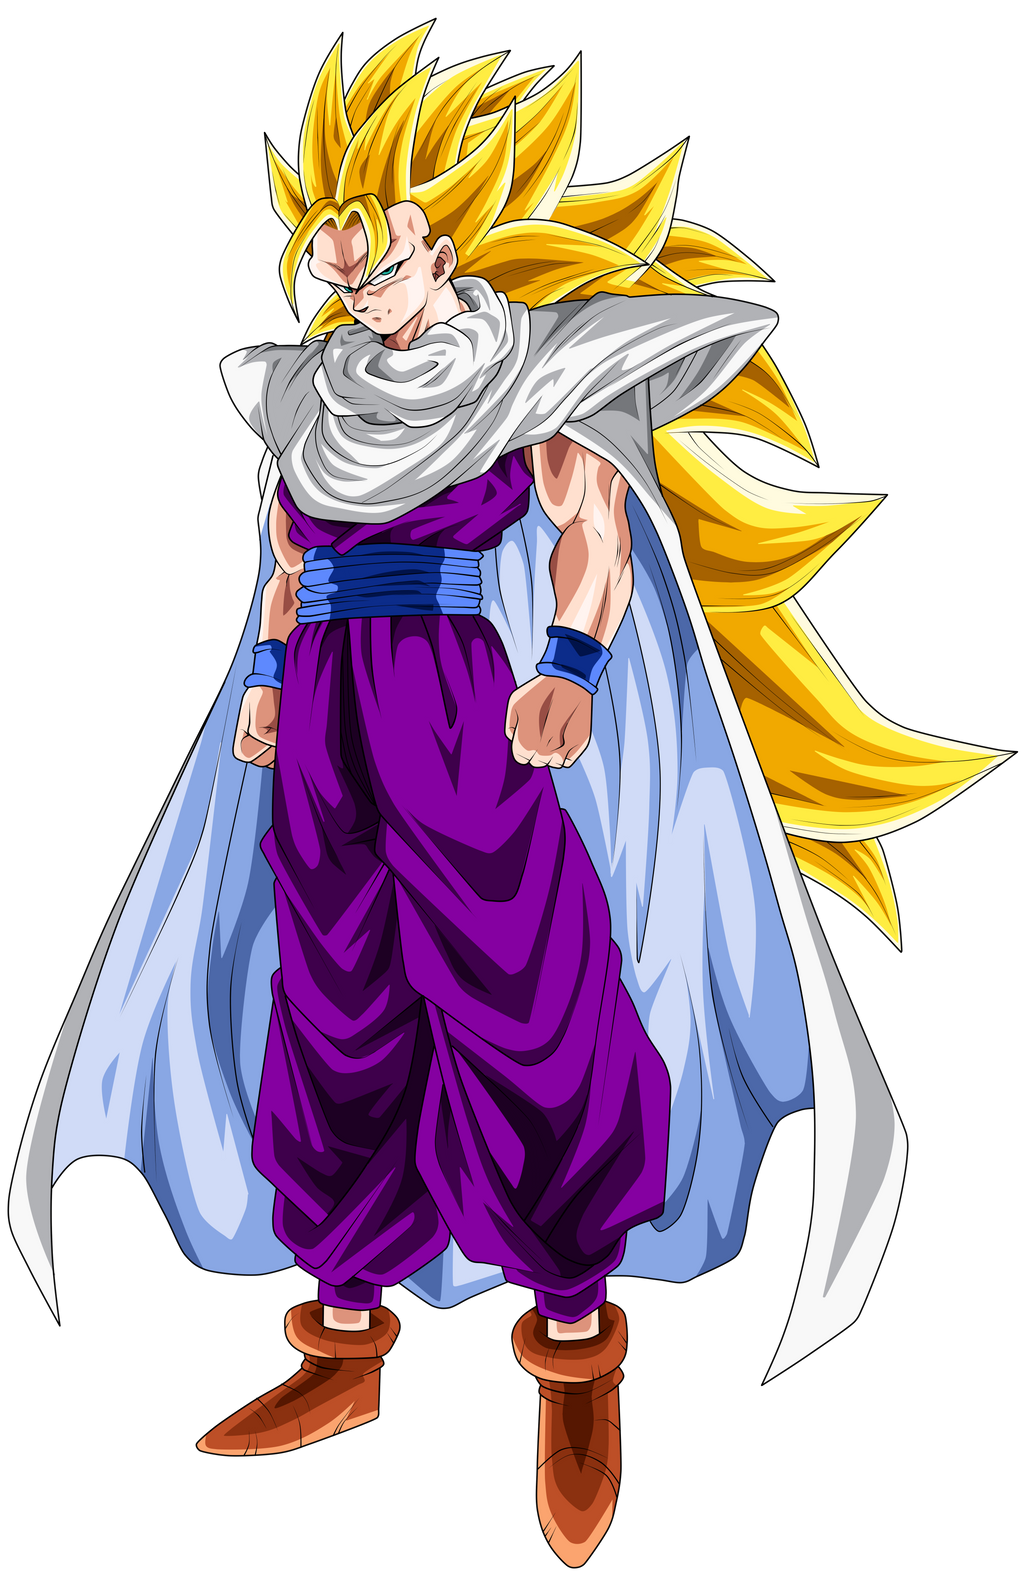 Super saiyan god mystic white gohan by ruga rell on deviantart gohan super saiyan 3 special 700 watchers by chronofz gohanks super dragon ball thecheapjerseys Image collections